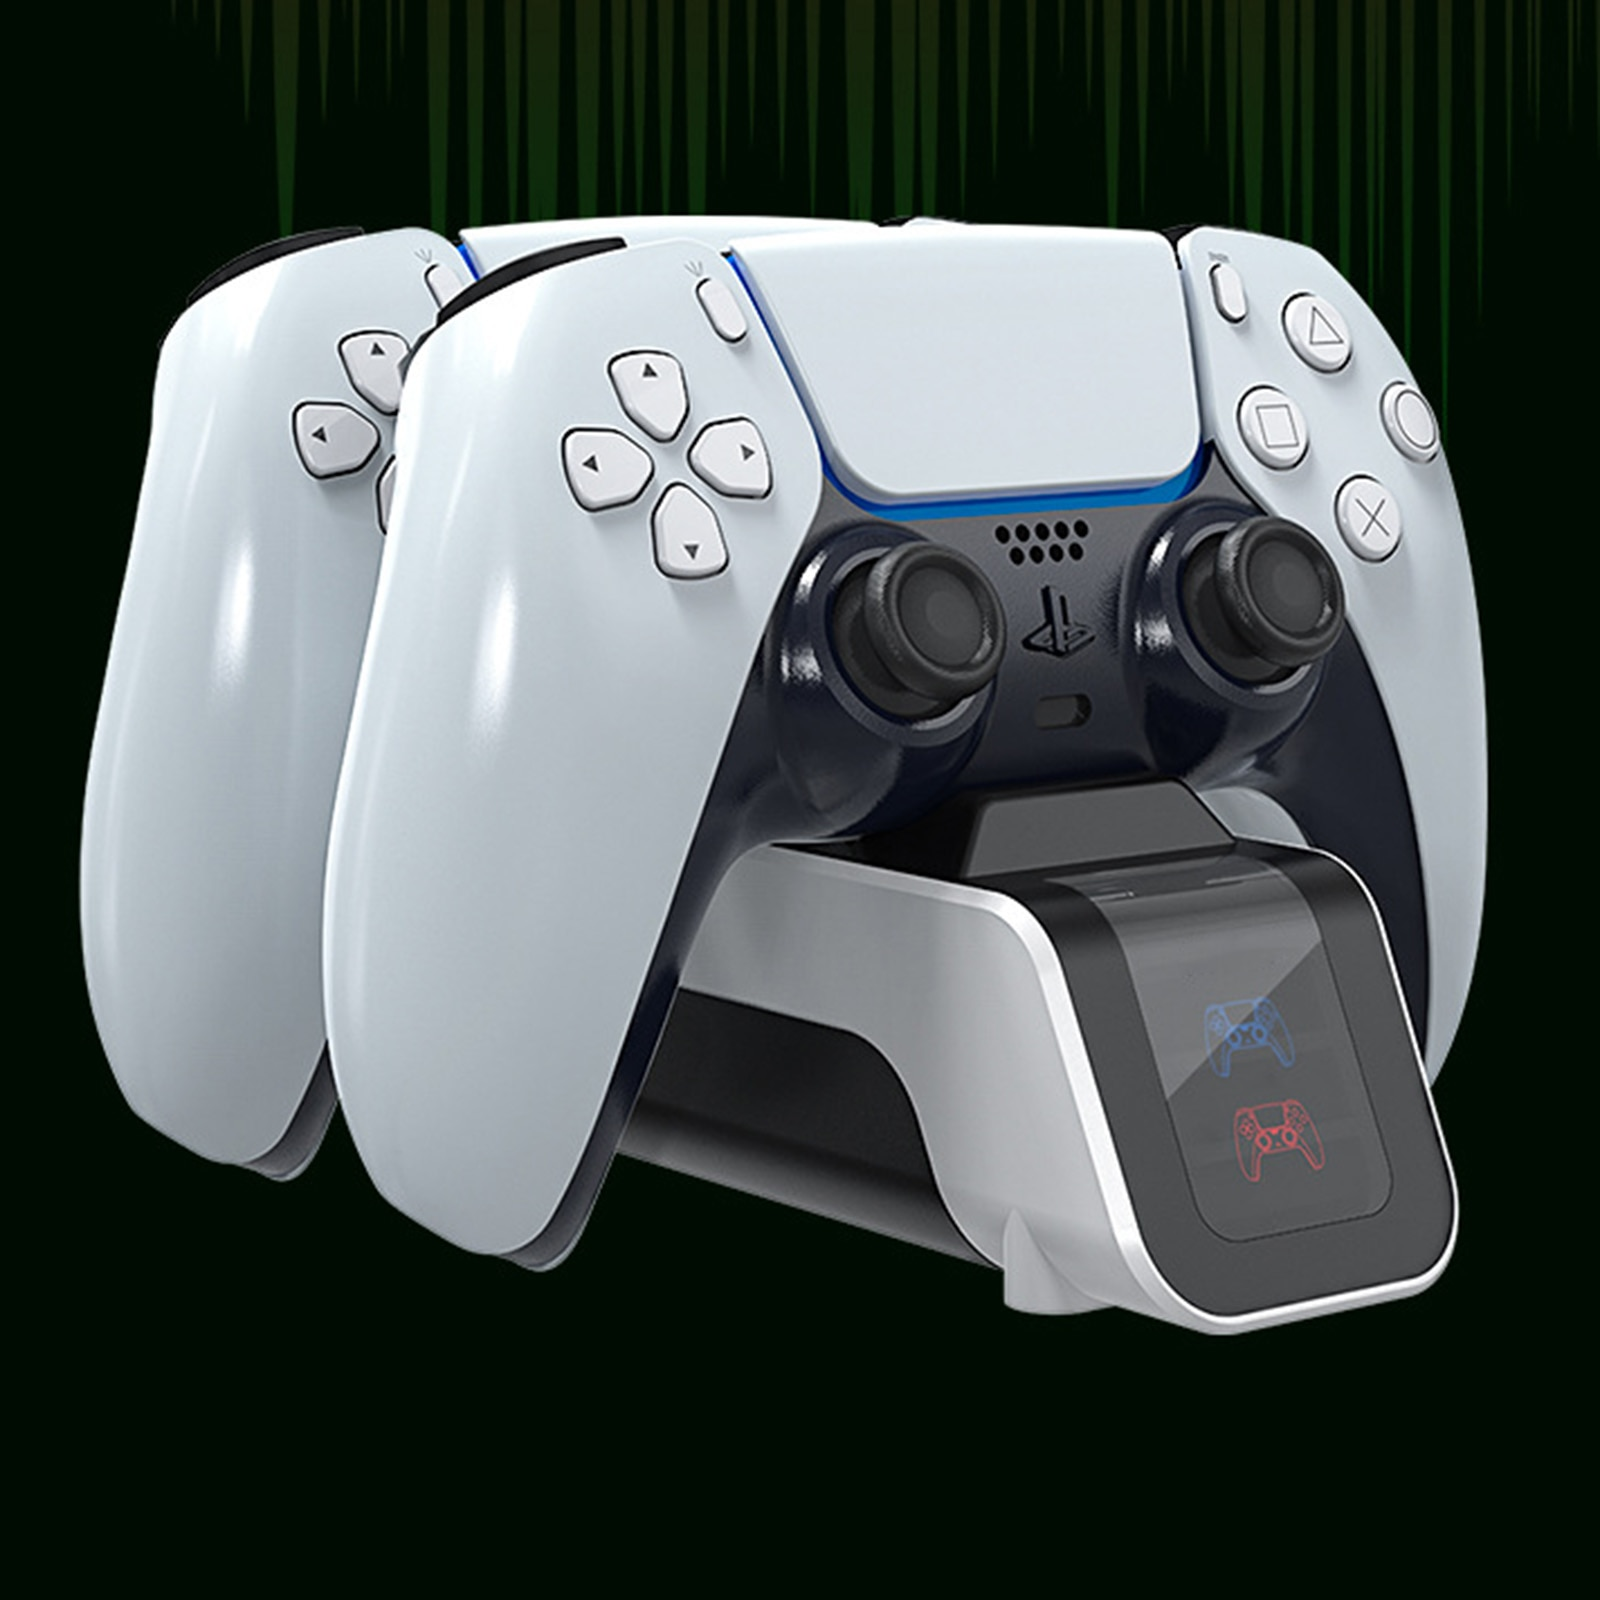 Dual USB Handle Fast 5V 1500MA Charging Dock Station Stand Charger for Play Station 5 PS5 Game Controller Joypad Joystick